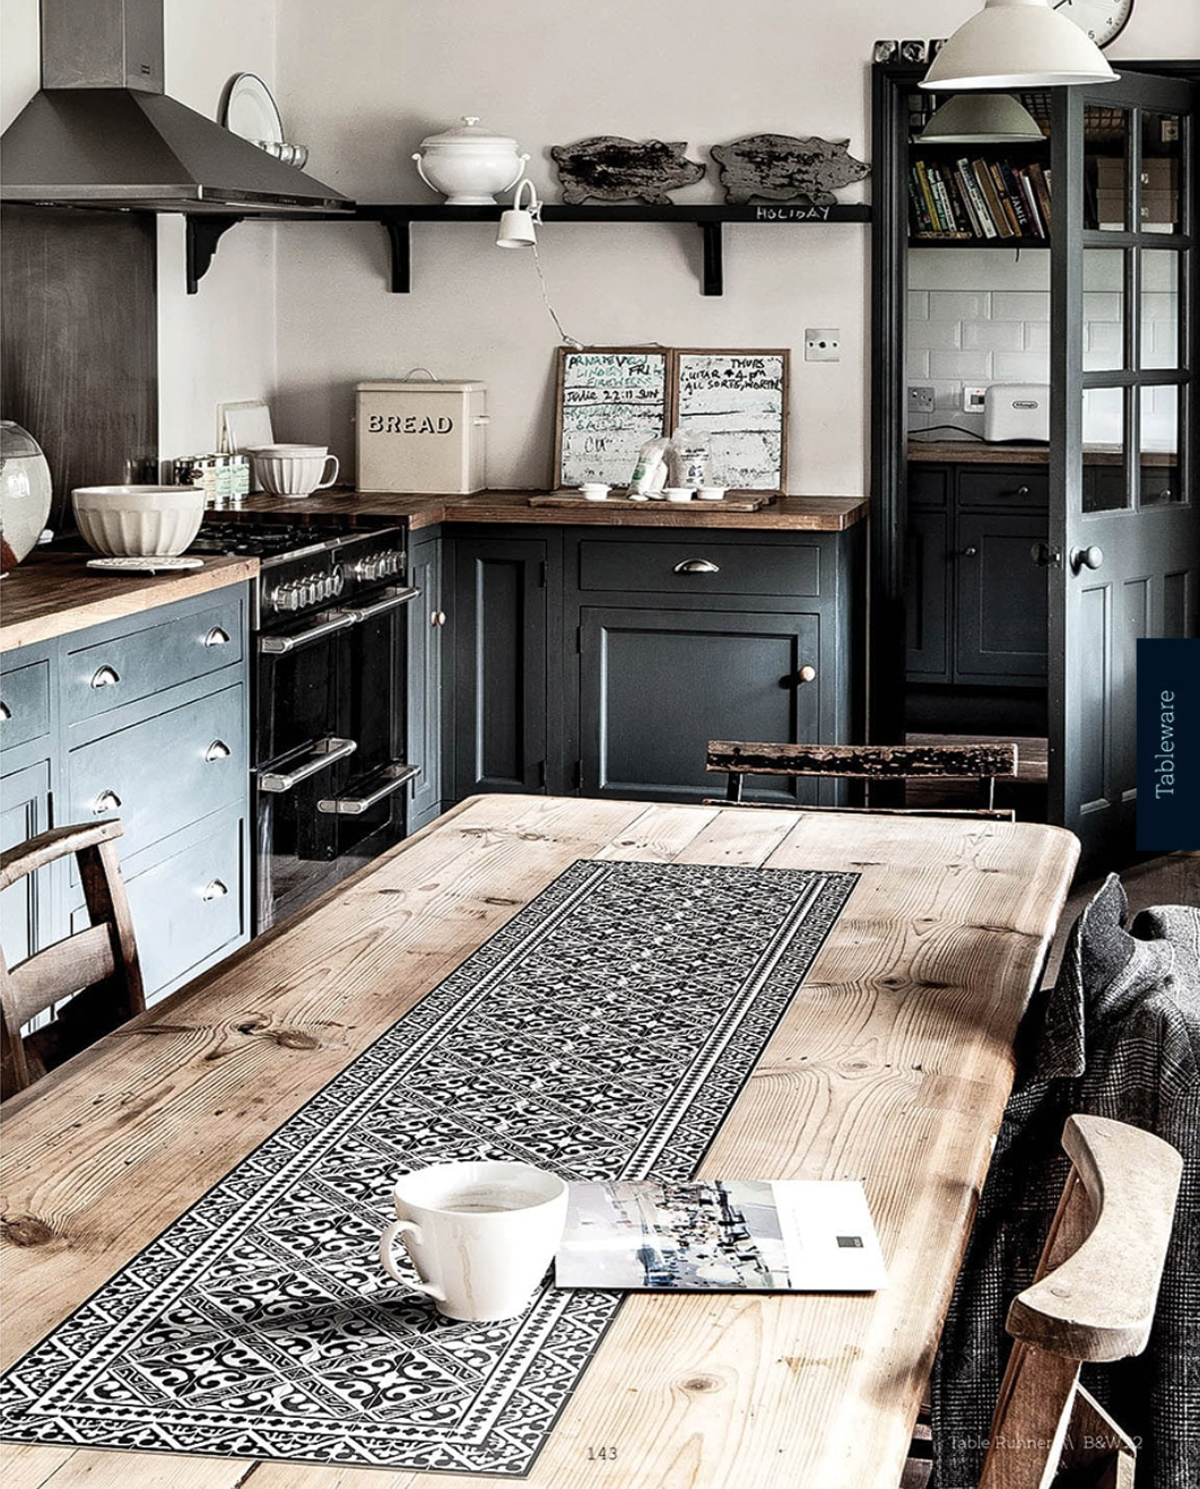 How To Choose A Beautiful And Practical Rug For The Kitchen